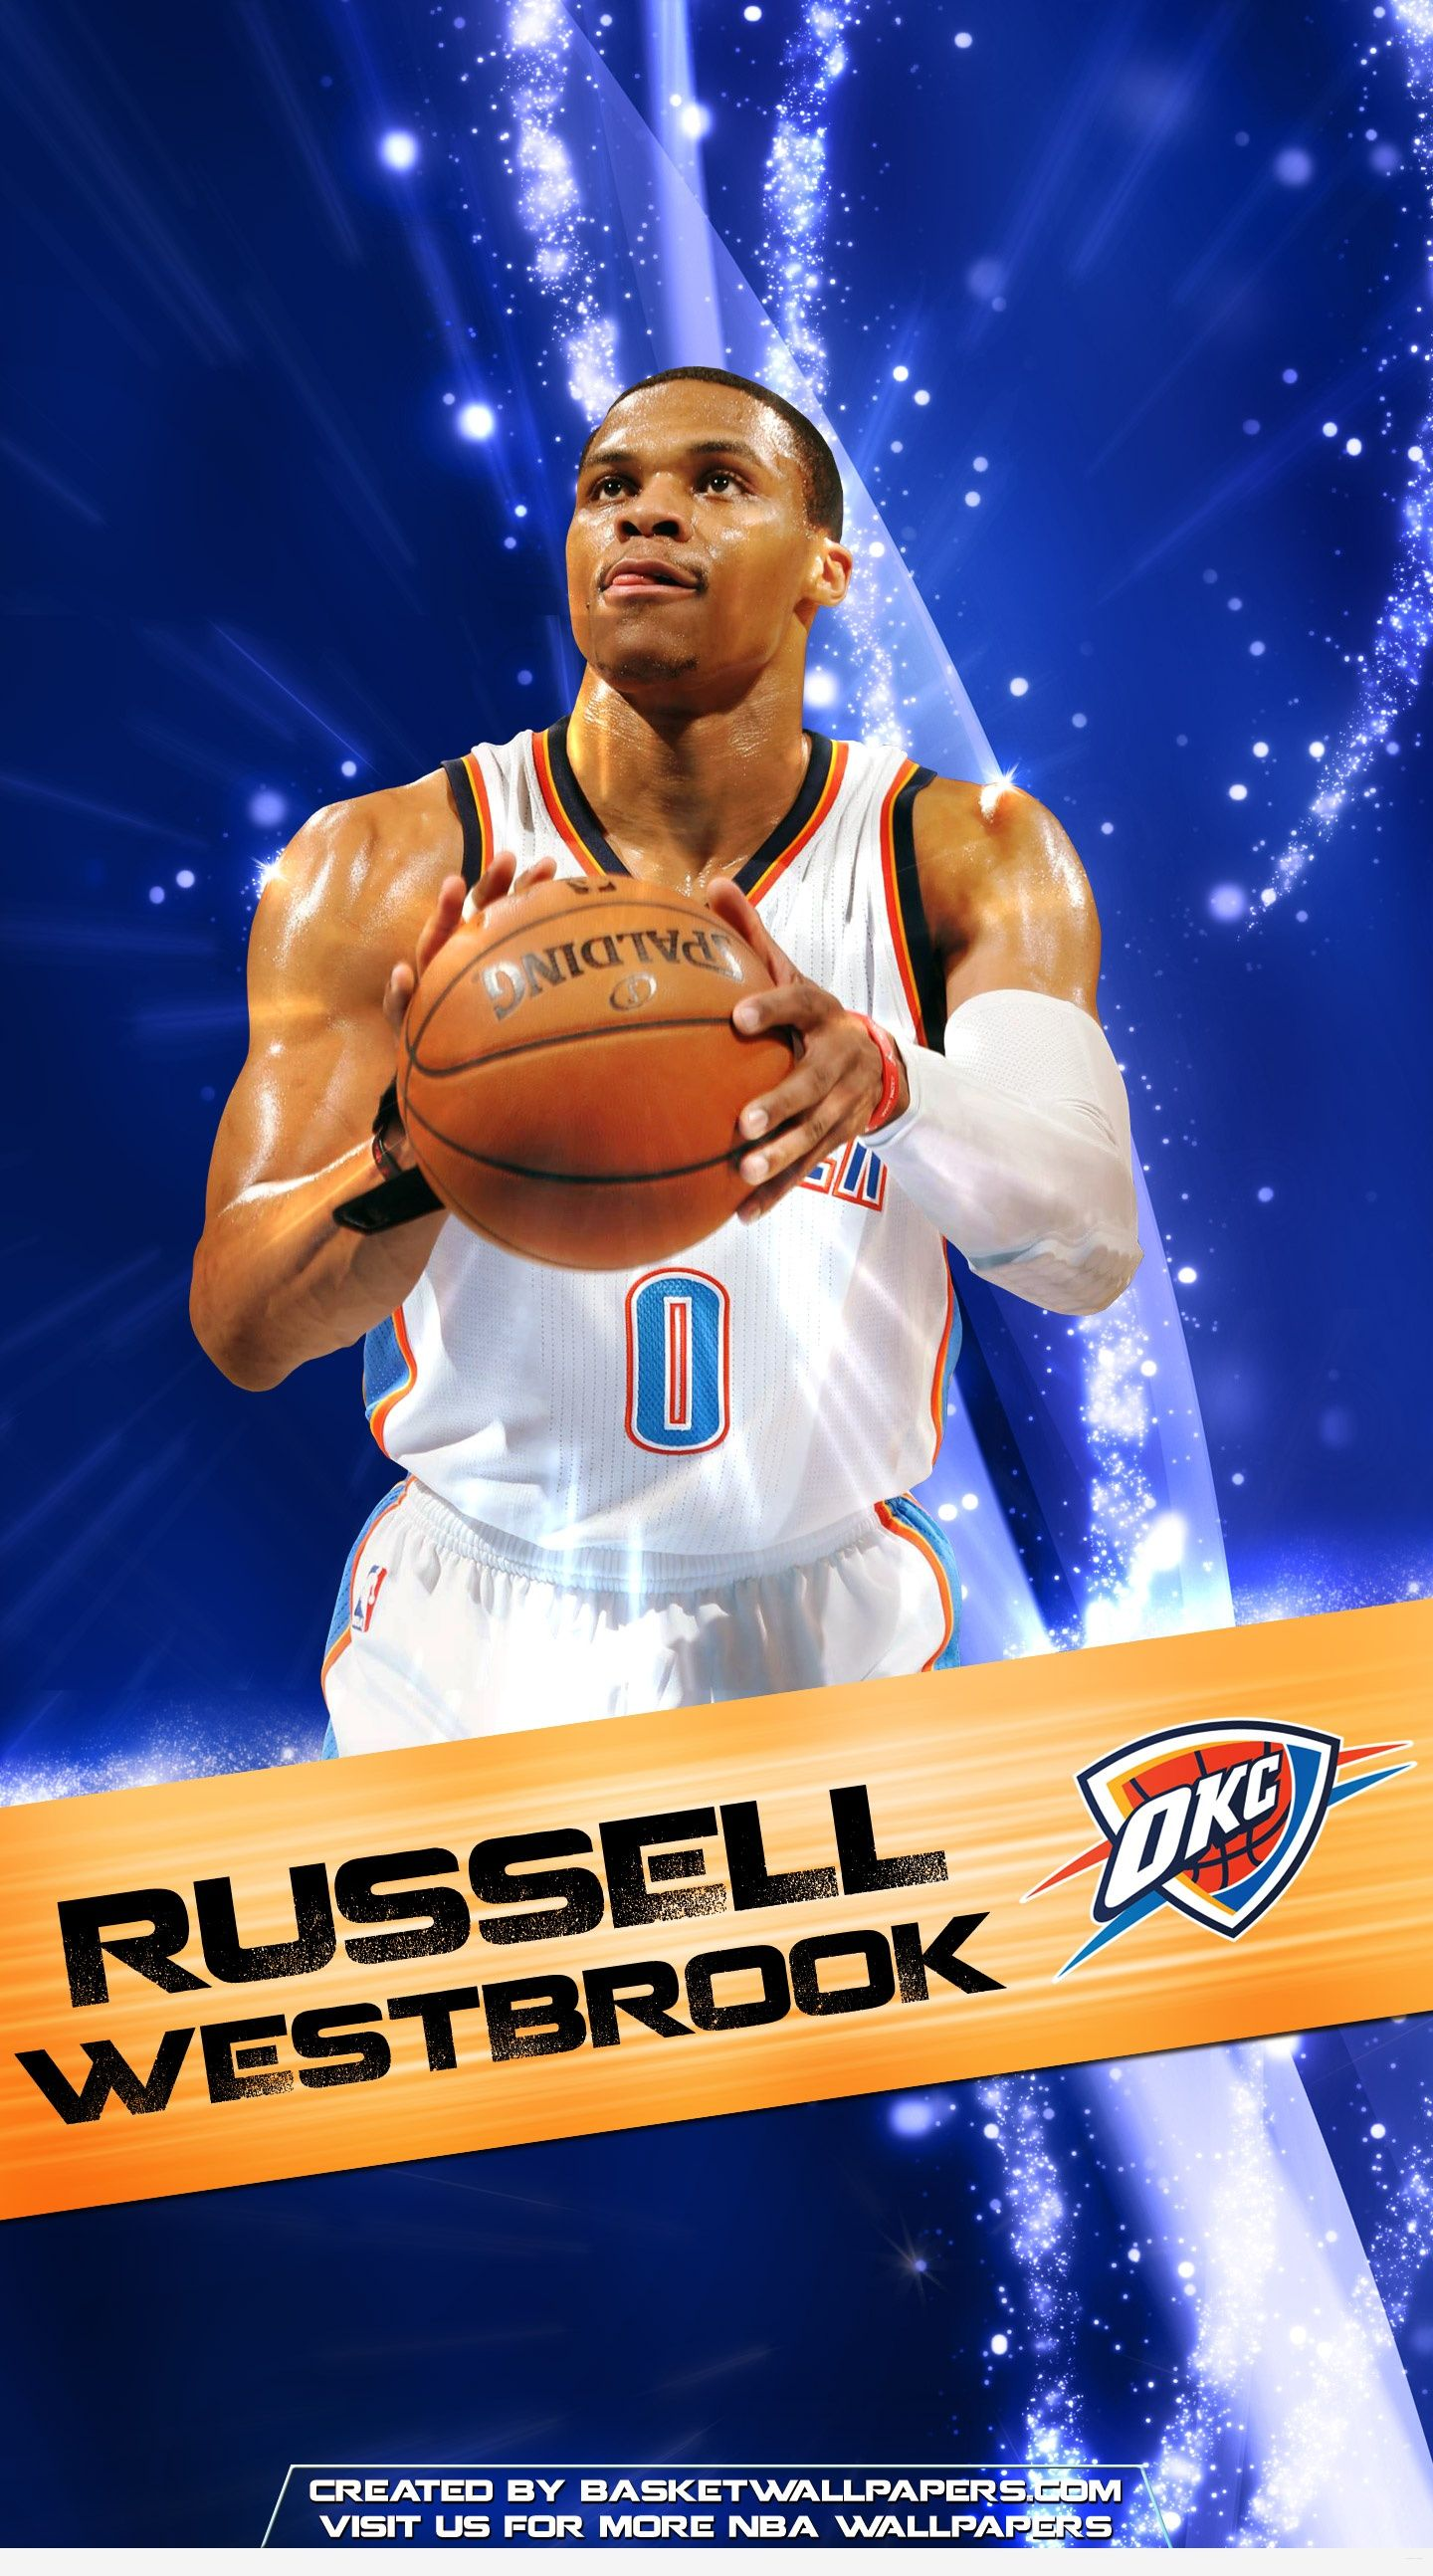 russell westbrook iphone wallpaper http